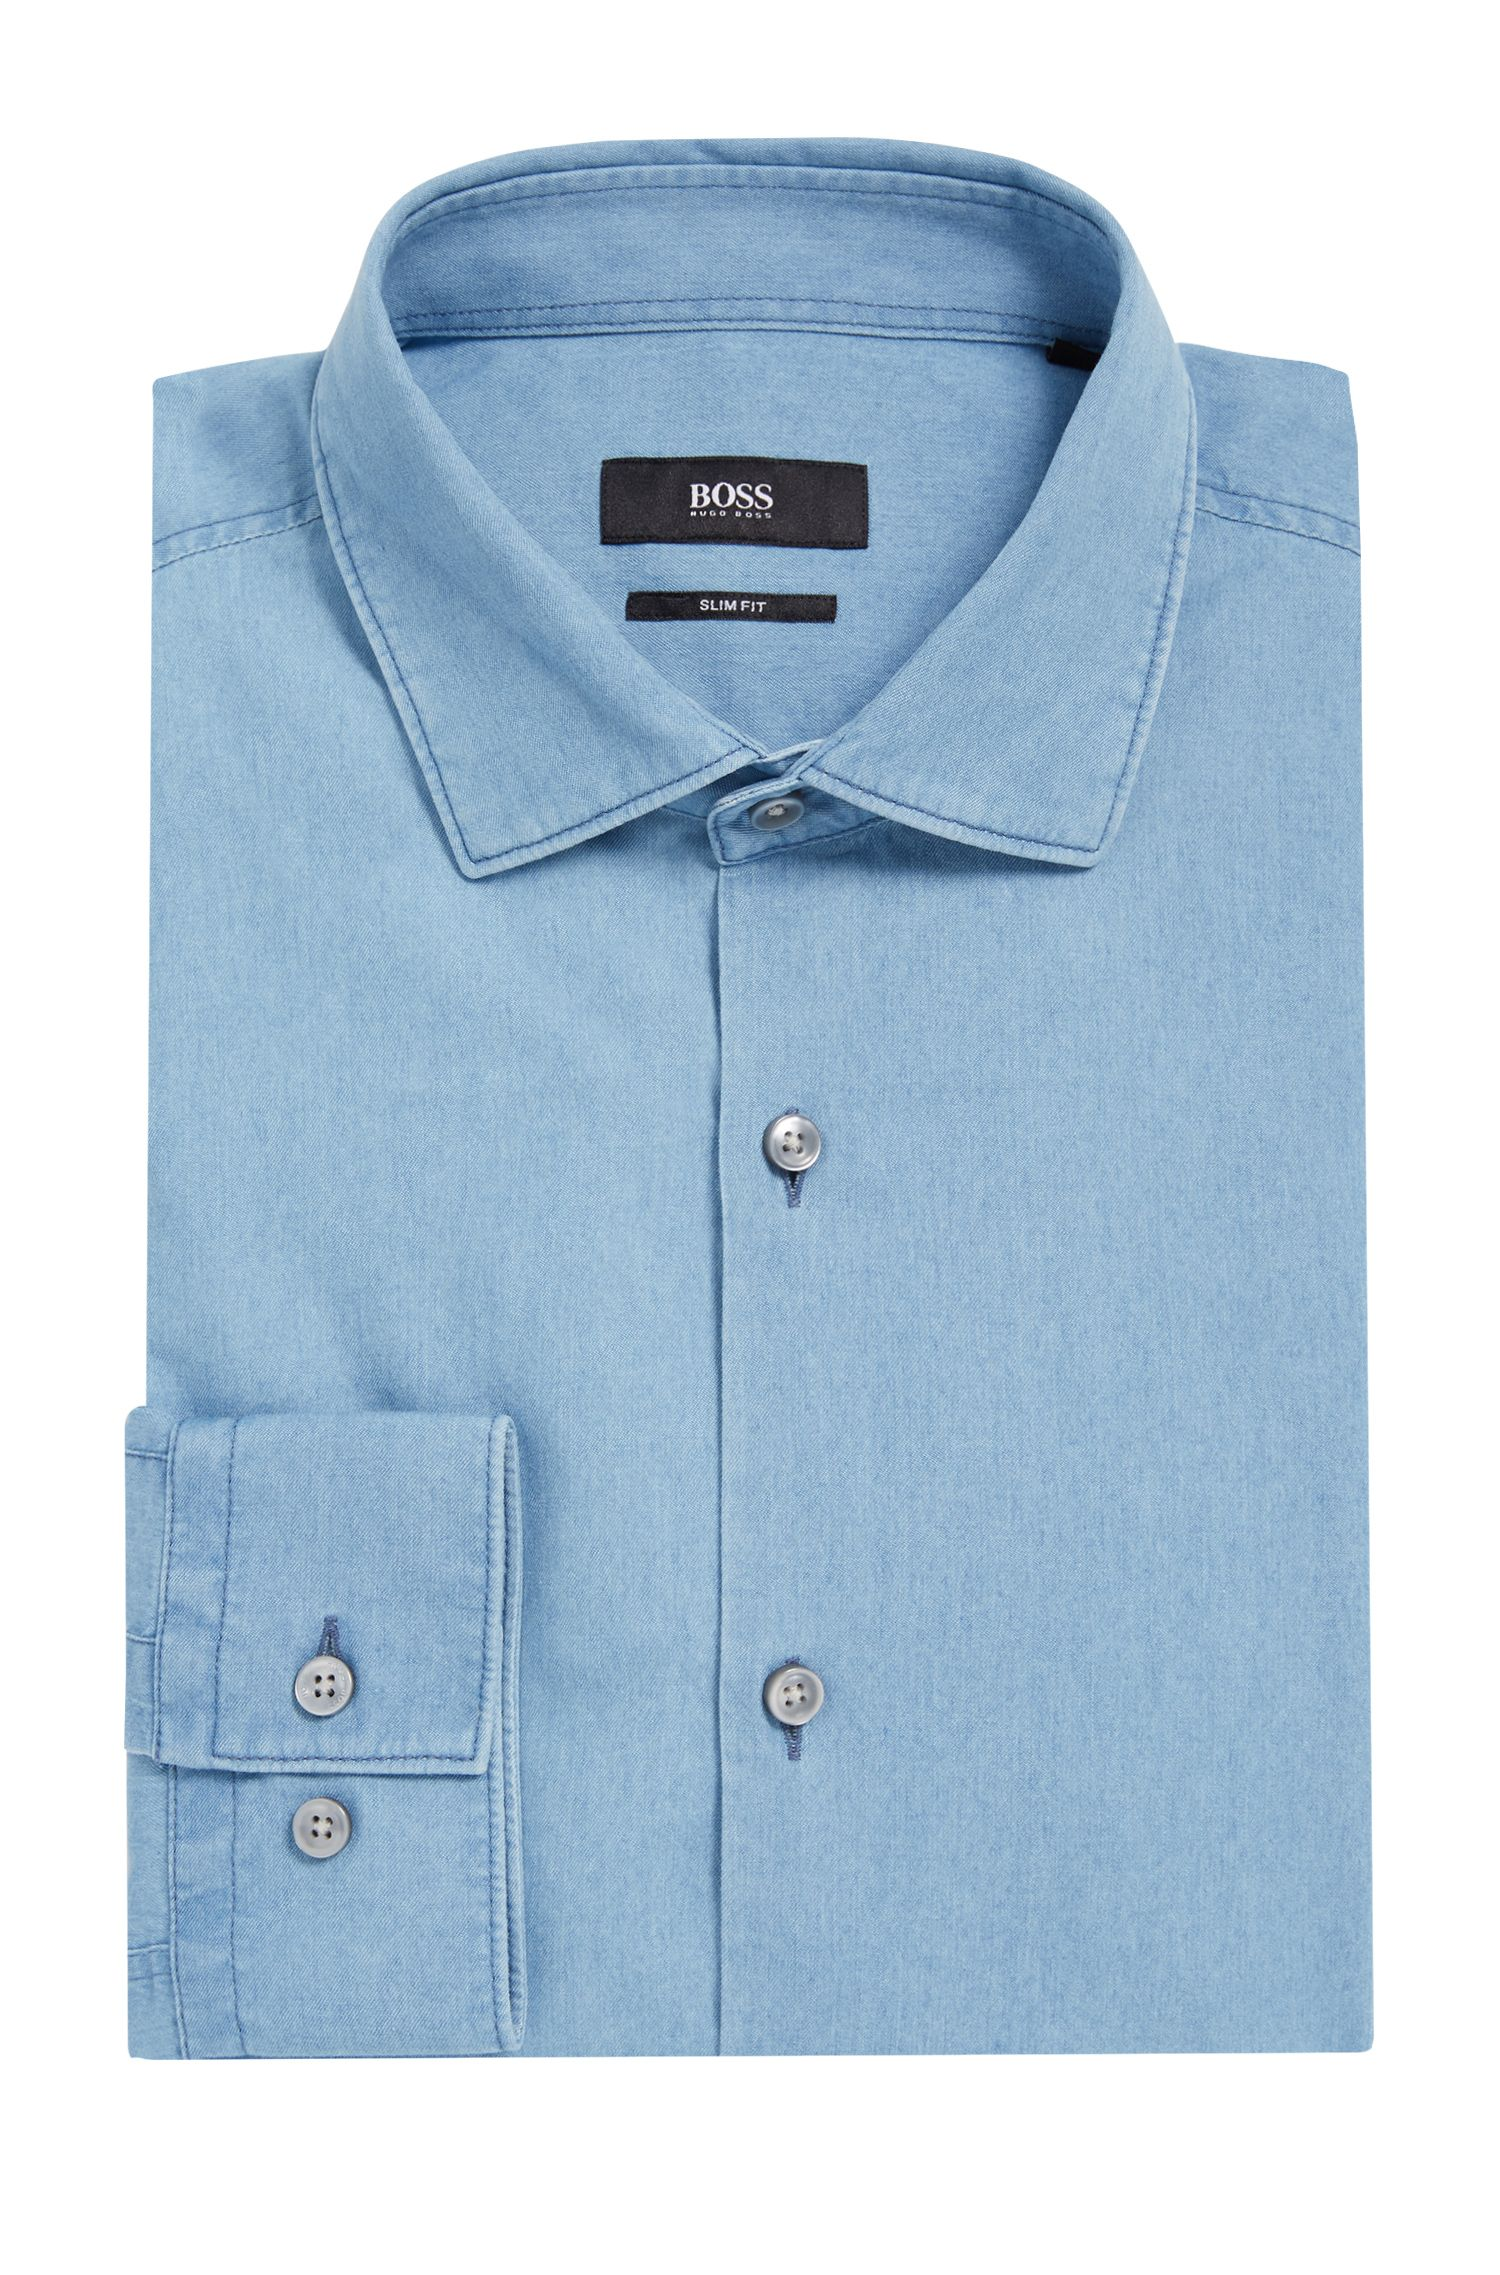 'Ismo' | Slim Fit, Cotton Dress Shirt